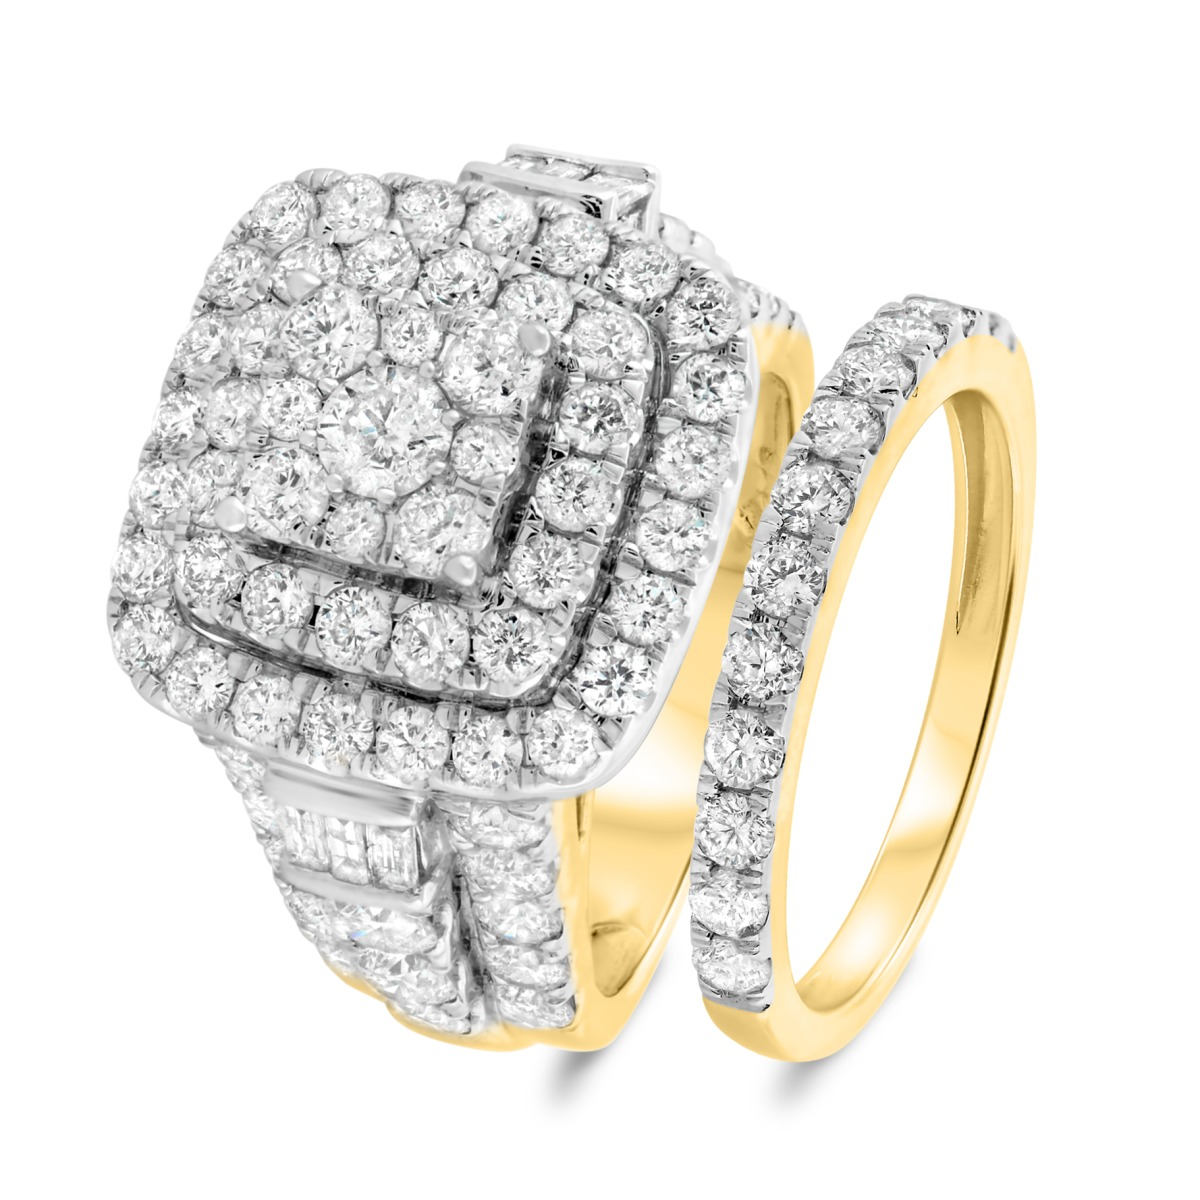 4 3/4 CT. T.W. Diamond Matching Bridal Ring Set 14K Yellow Gold